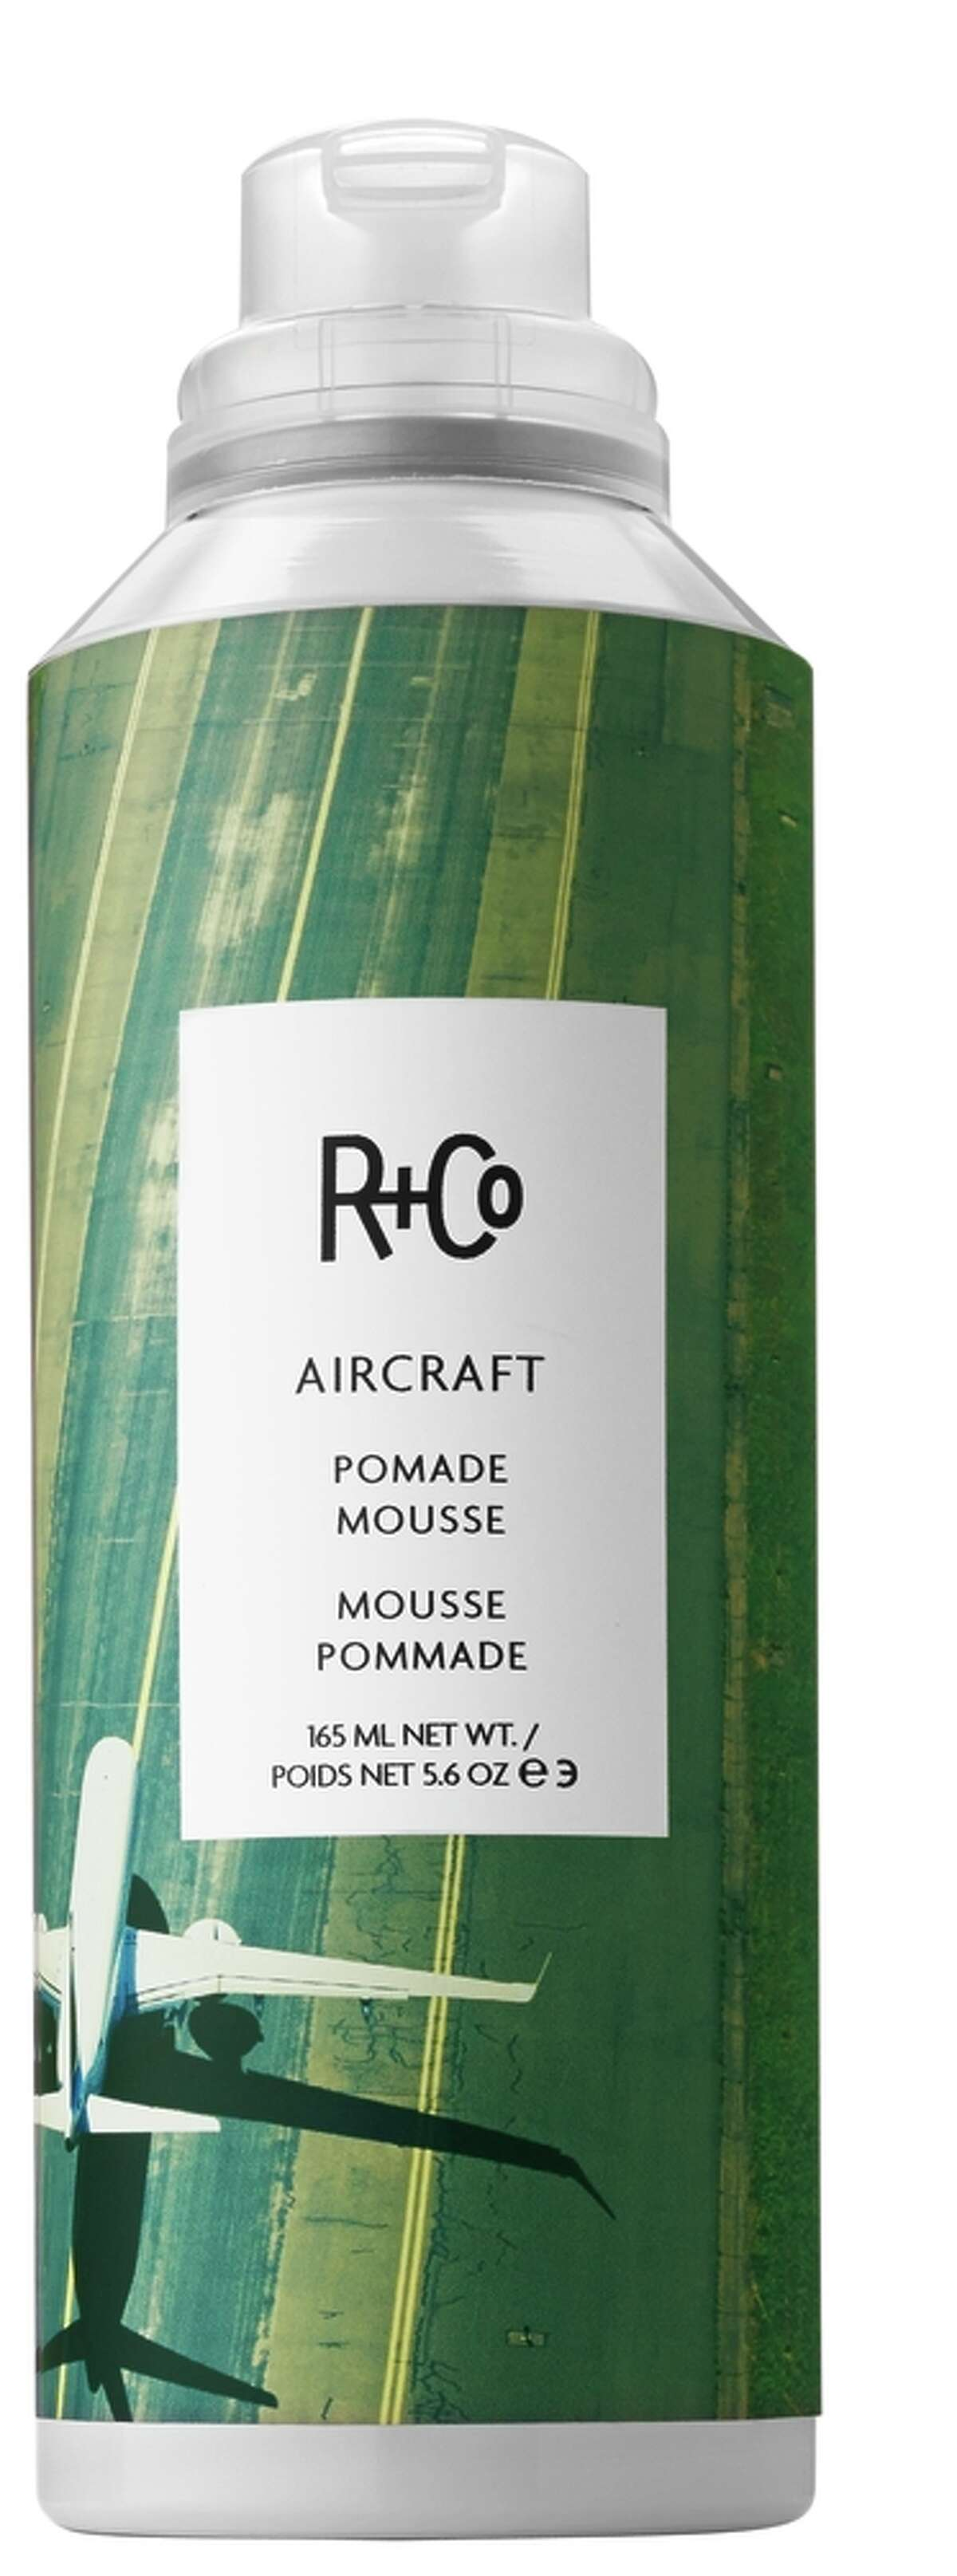 Michelle Snyder recommends R+Co Air Craft Pomade Mousse for a soft, disheveled look.